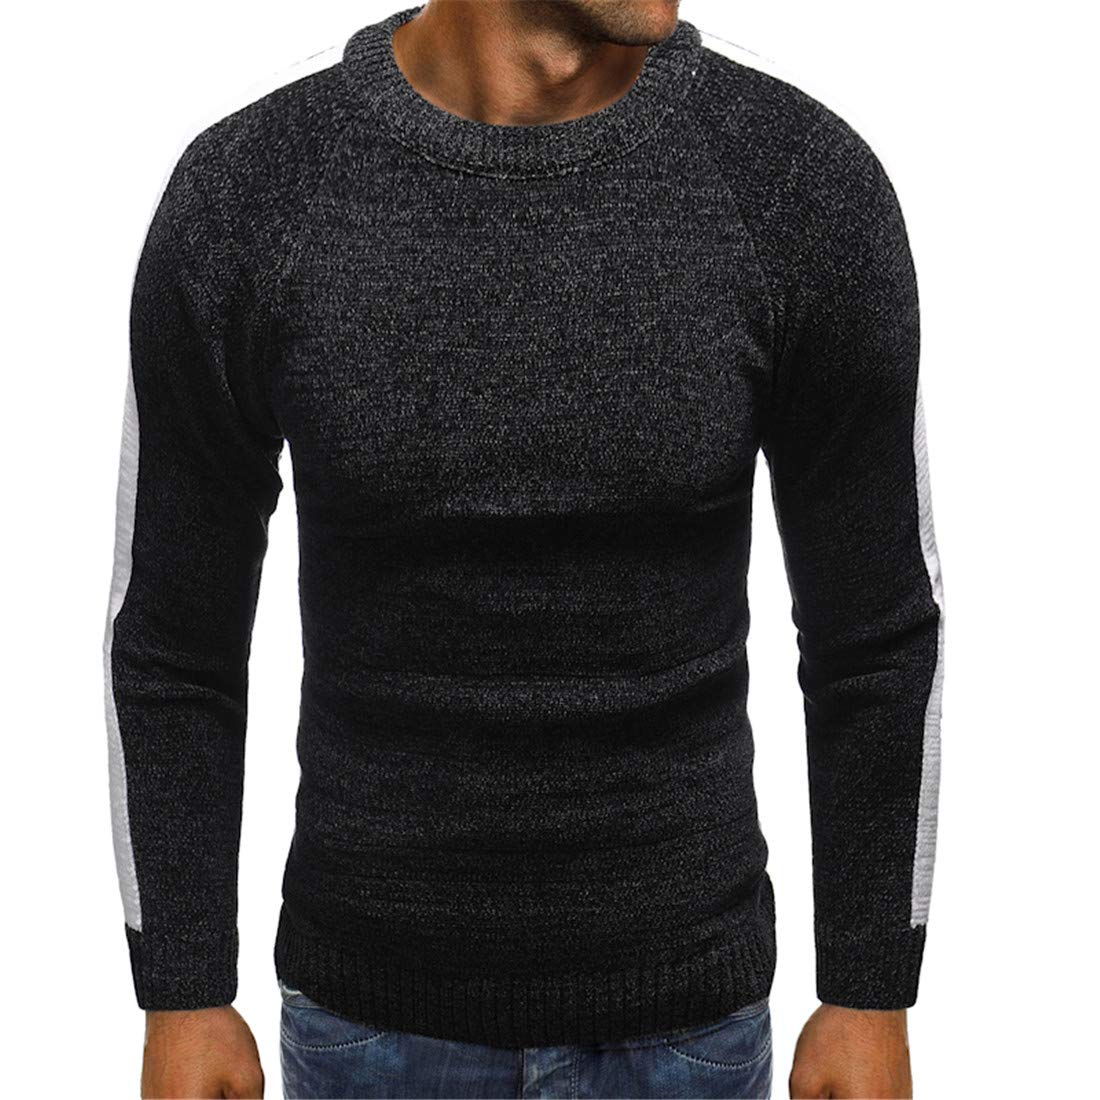 JXG Men Crew Neck Contrast Stripes Knitted Sweaters Pullover Jumper